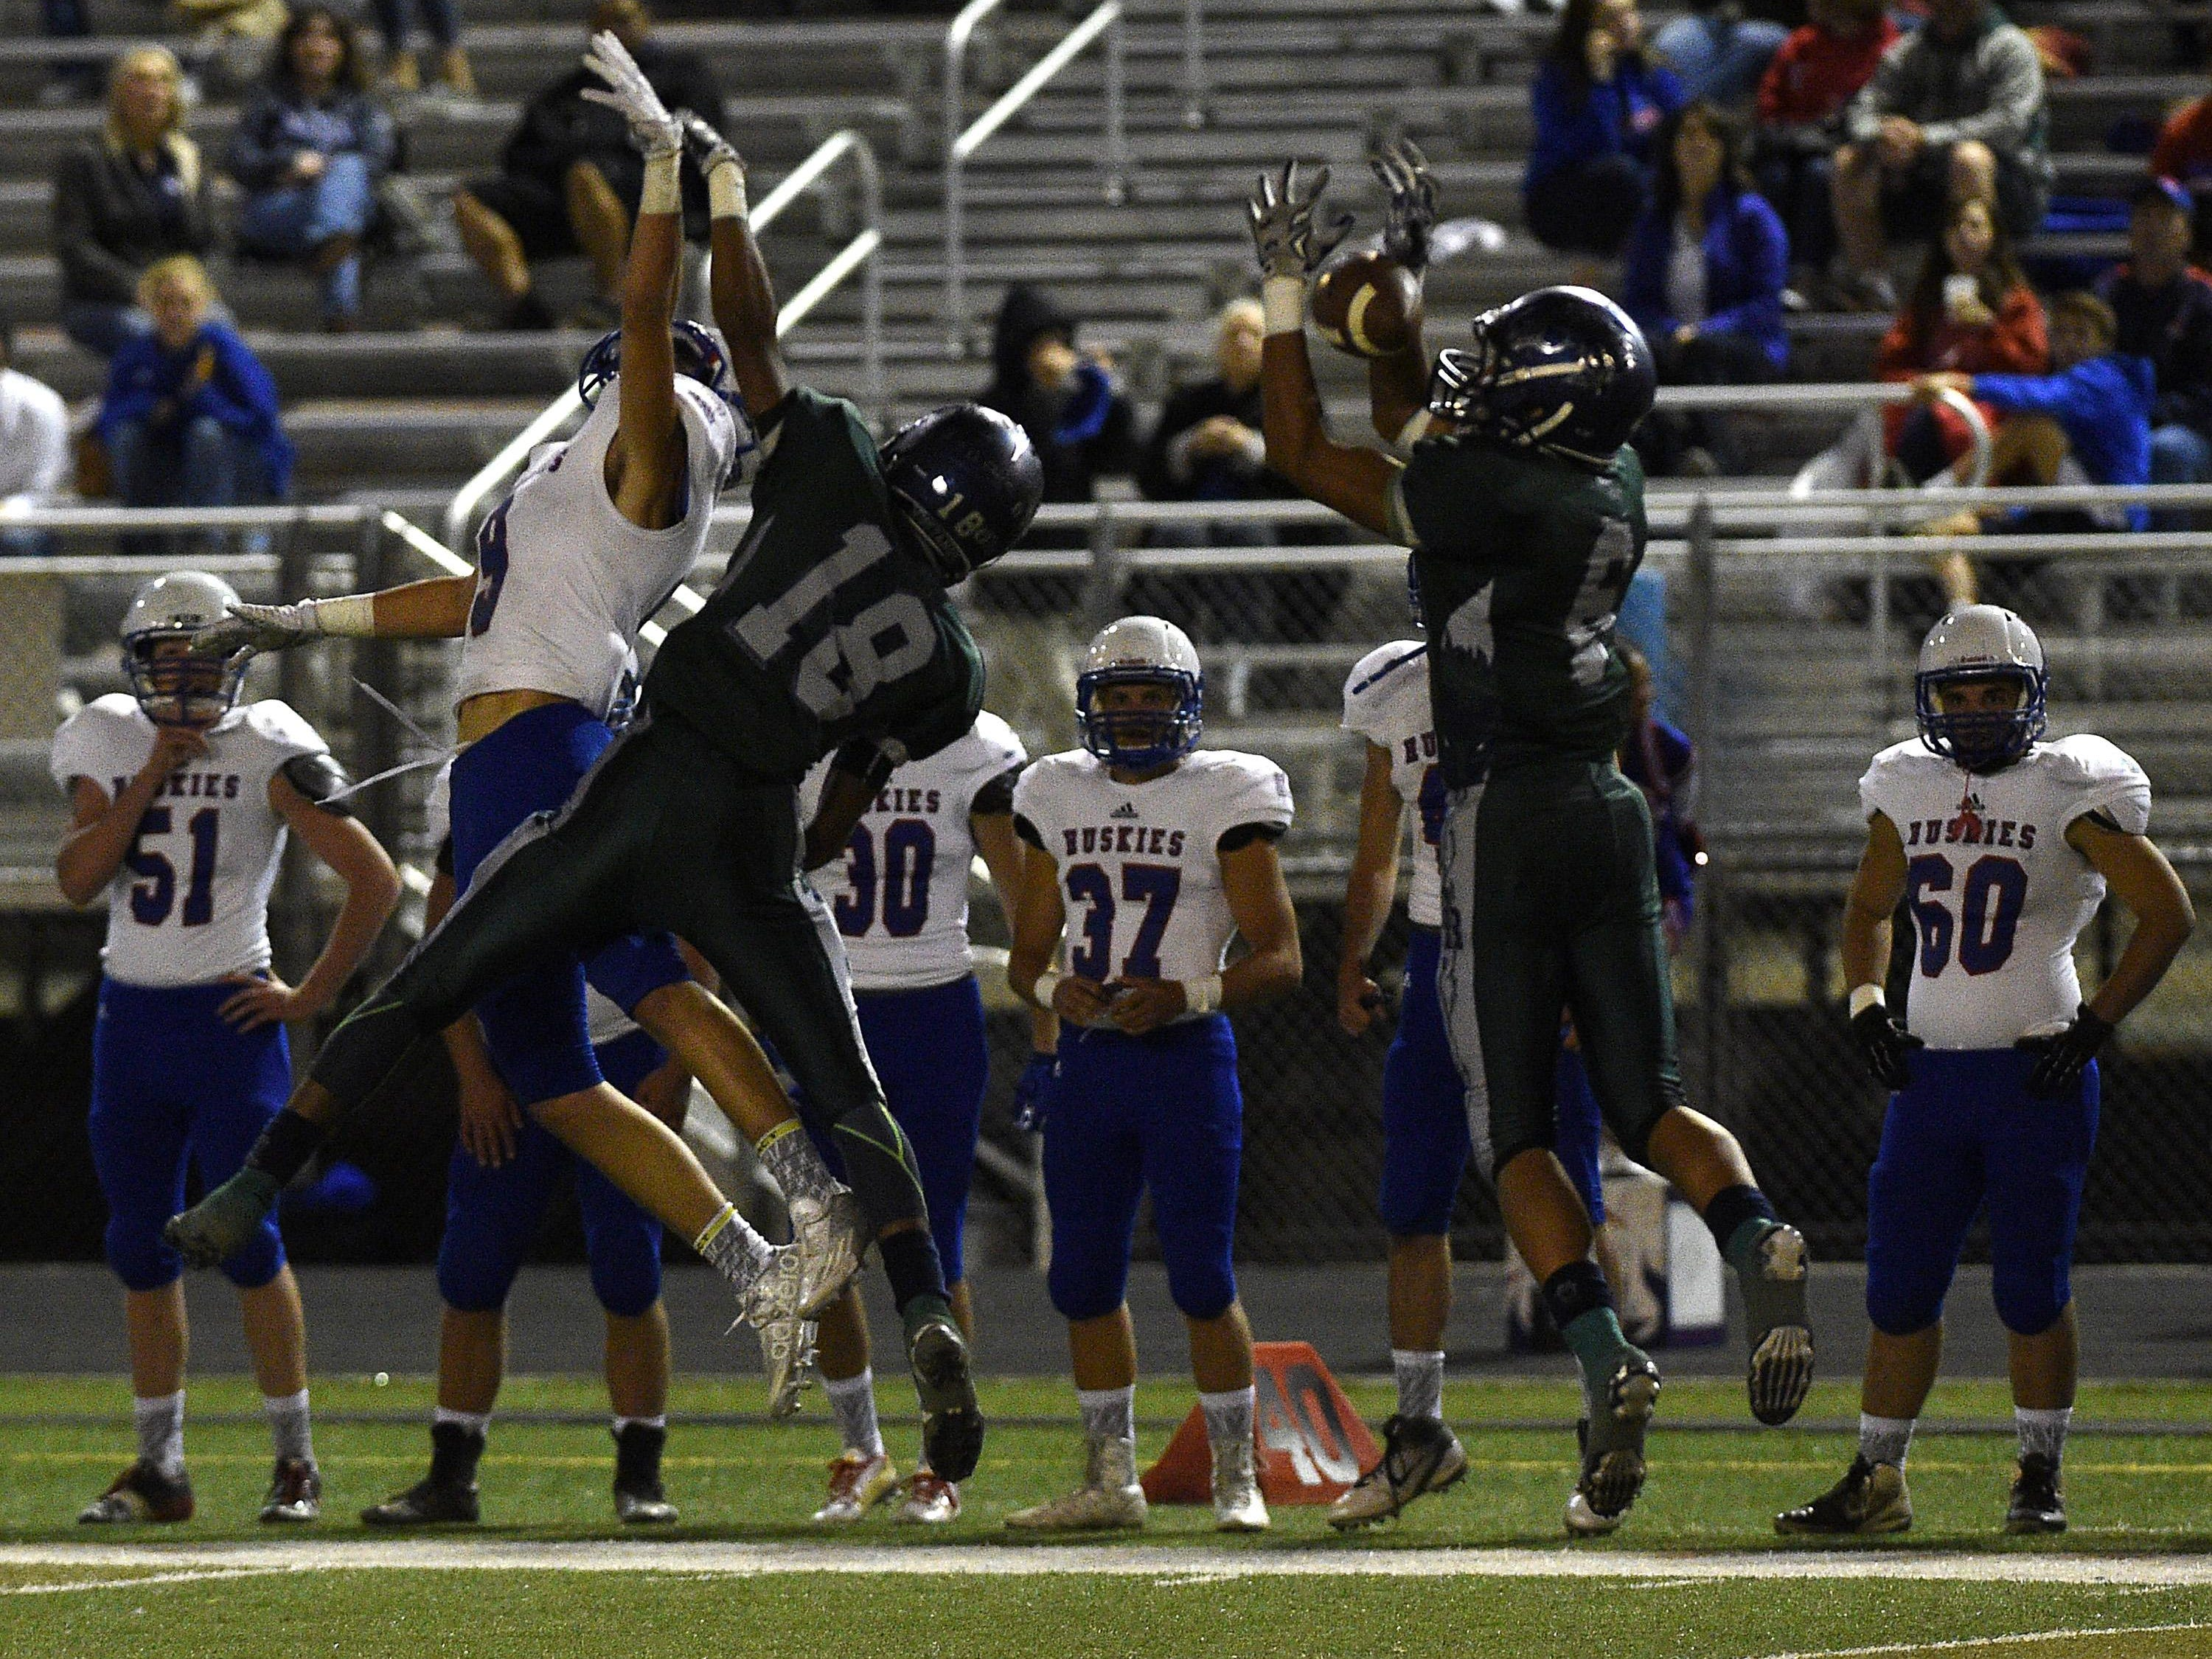 Damonte Ranch's Dru Jacobs (6) intercepts a pass intended for Reno's Will Barnard (9) during their football game on Friday.